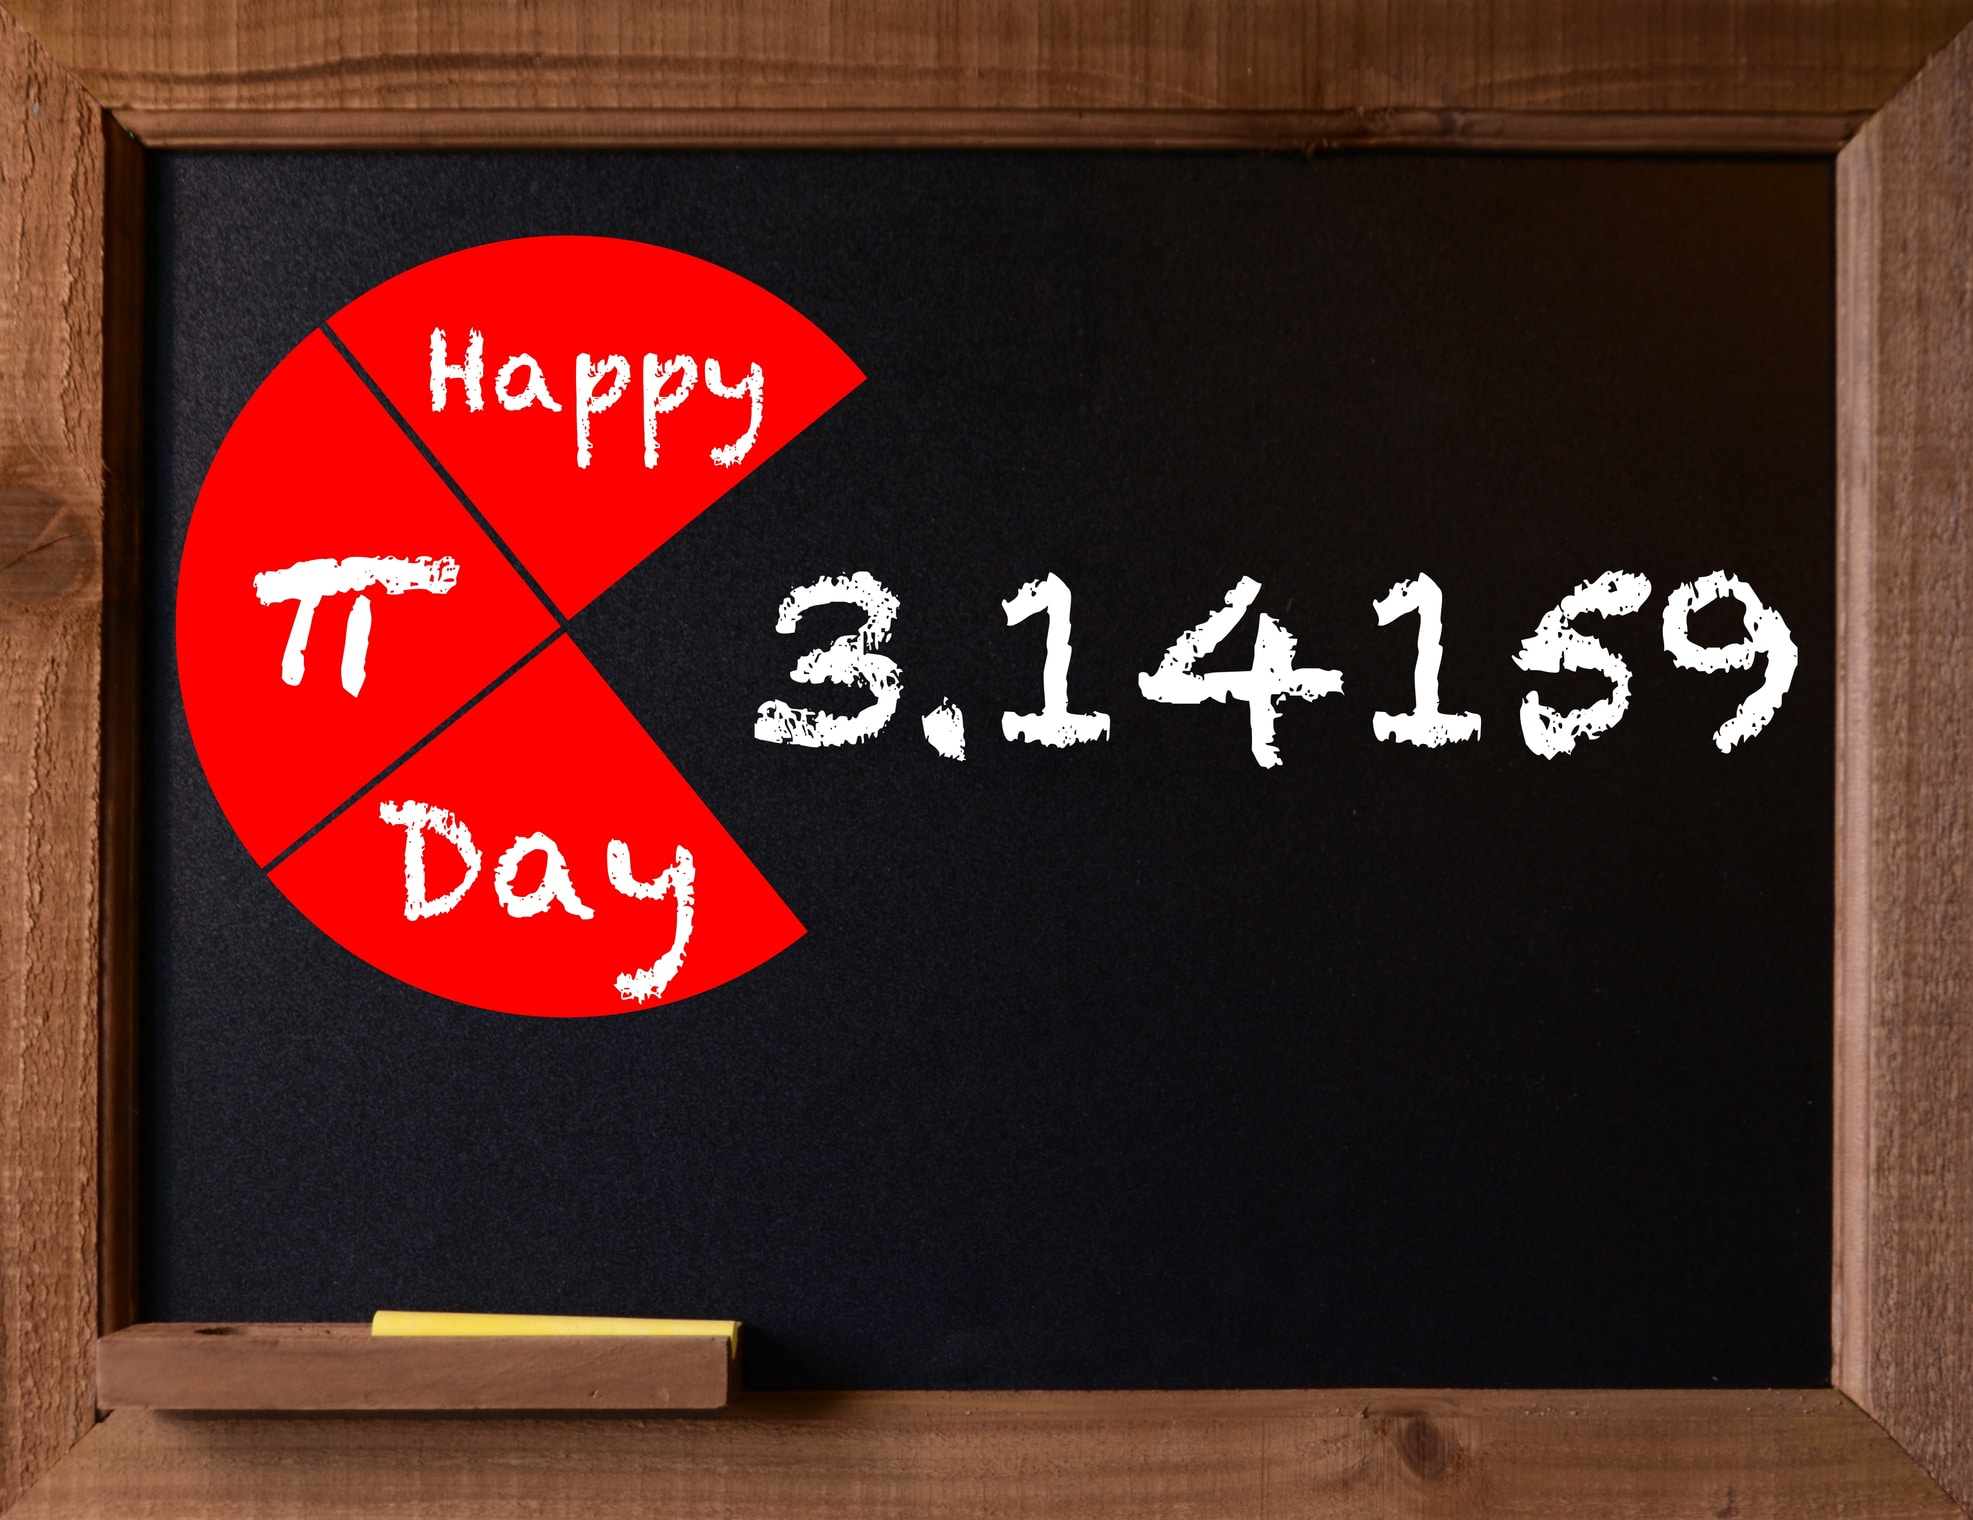 Blackboard with Happy Pi Day message